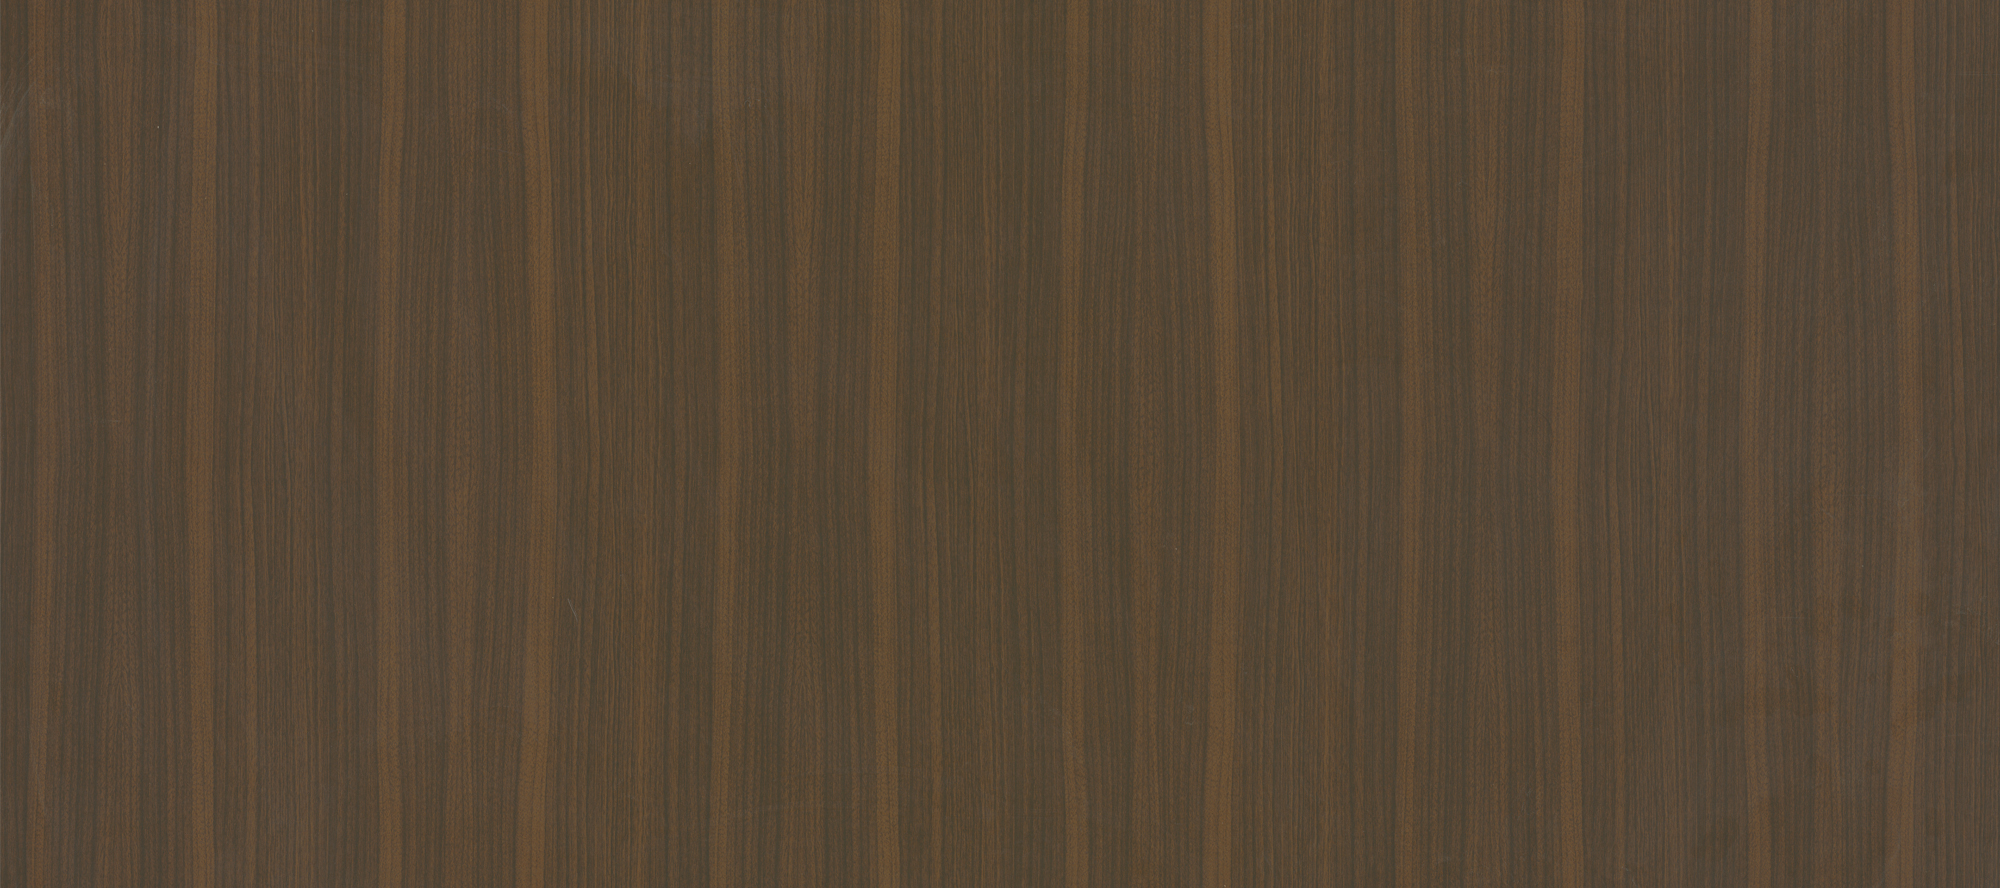 South Supreme walnut laminate-Sundek International